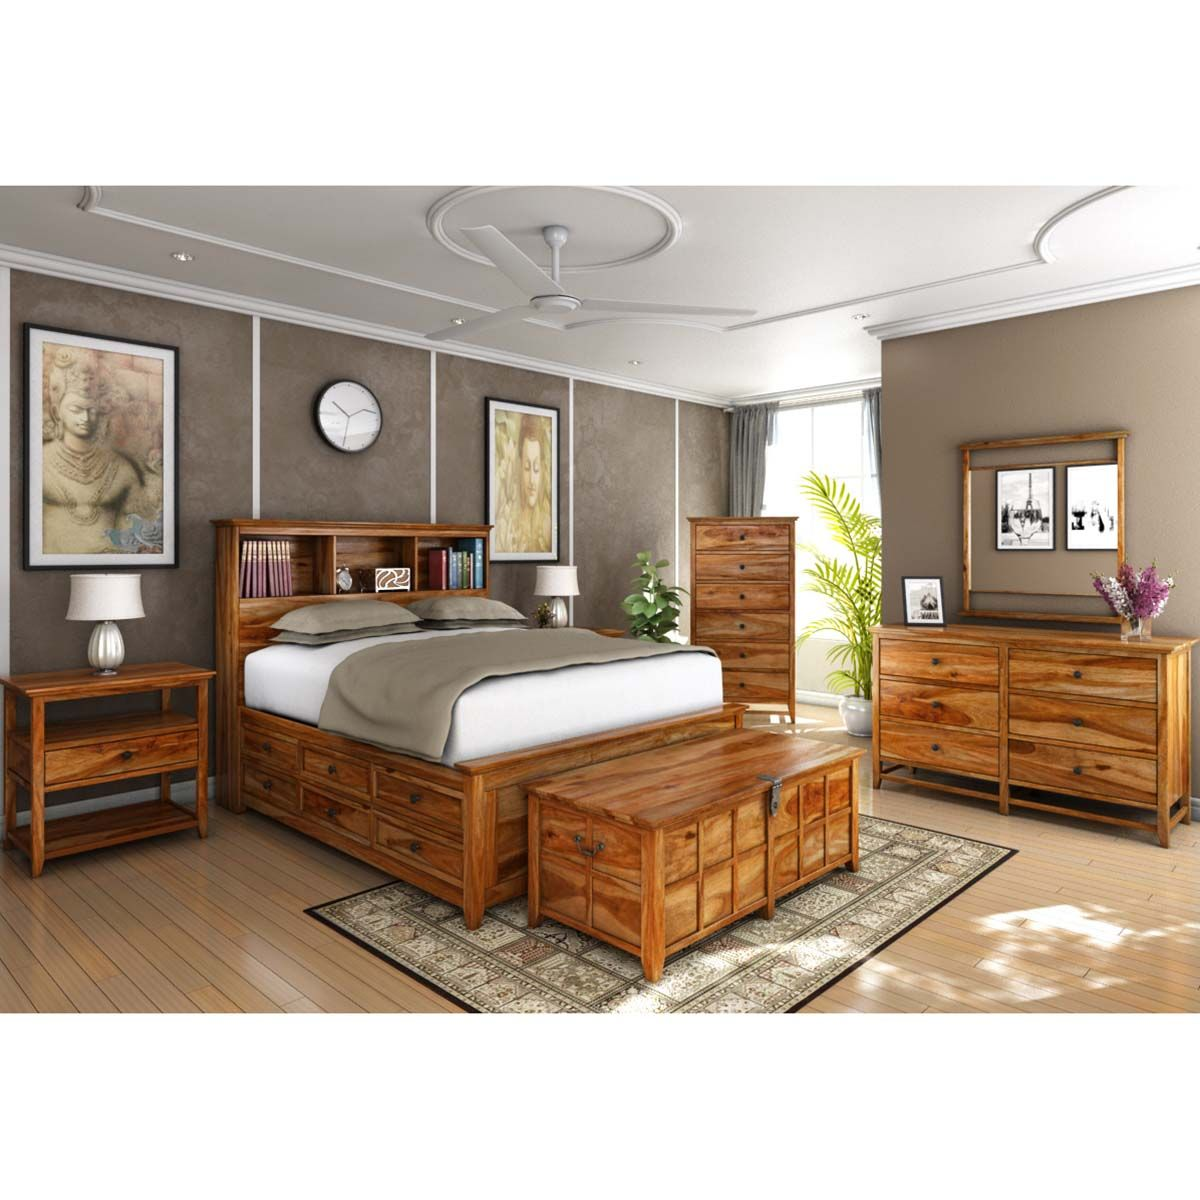 ignite california king drawer most the frame drawers size underneath bed under with platform beautiful of in top notch show elegant storage